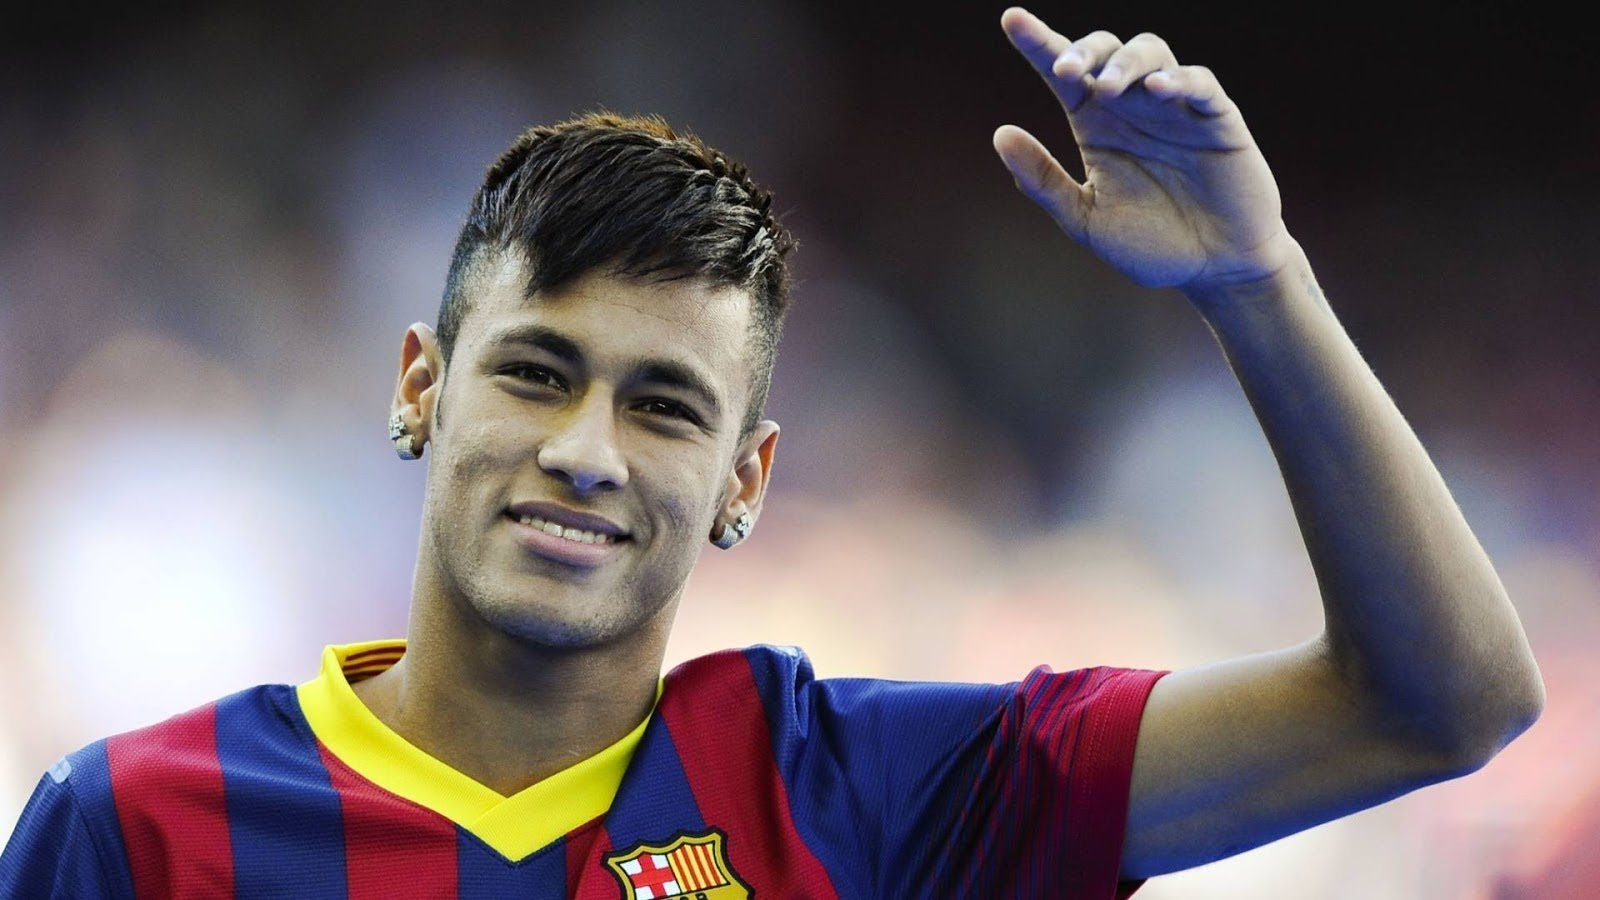 best photo neymar football soccer player free hd mobile desktop bakground download wallpaper jpg